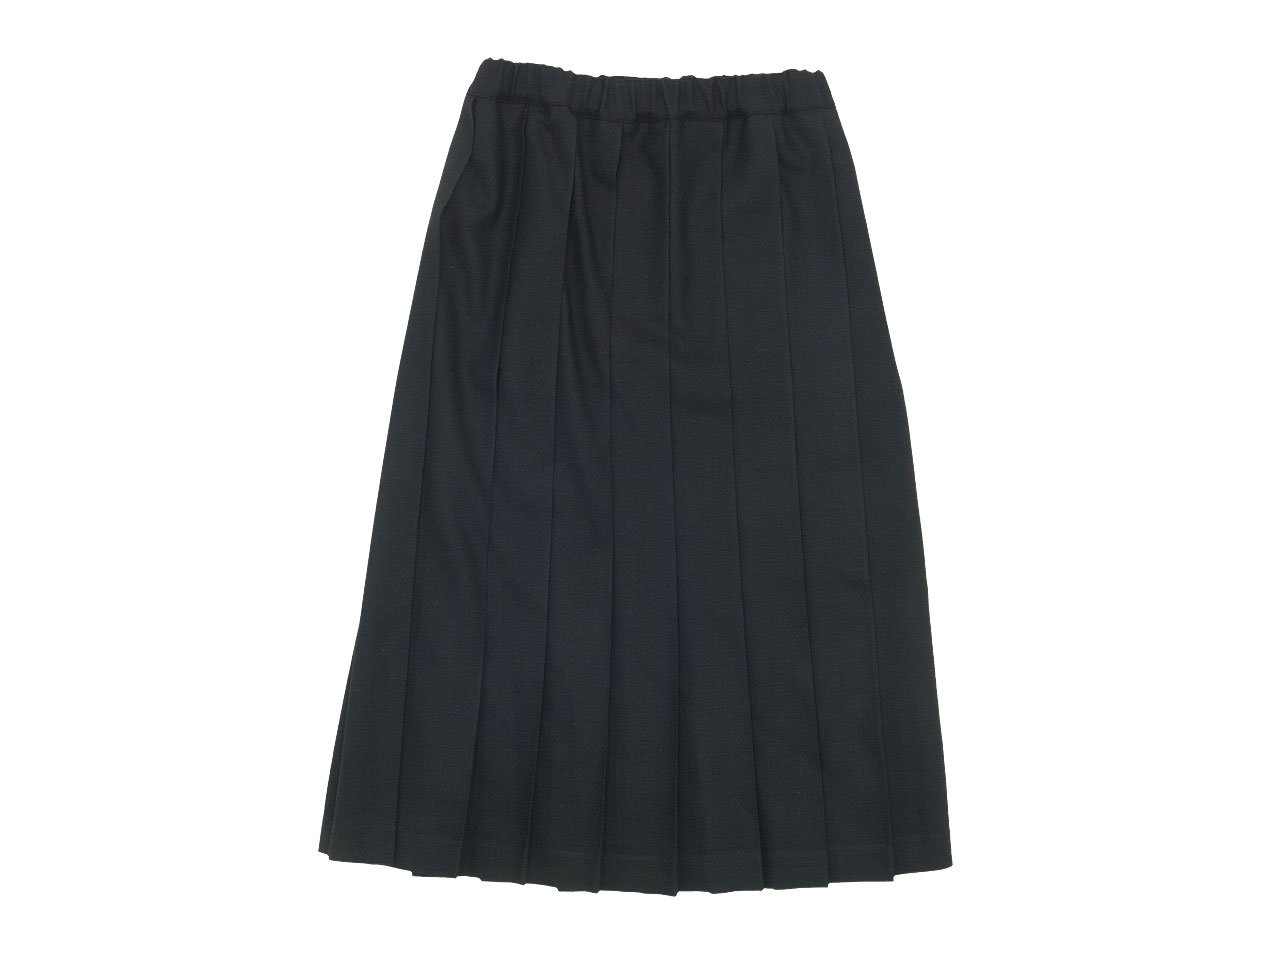 Charpentier de Vaisseau Pleated Skirt Long Wool BLACK